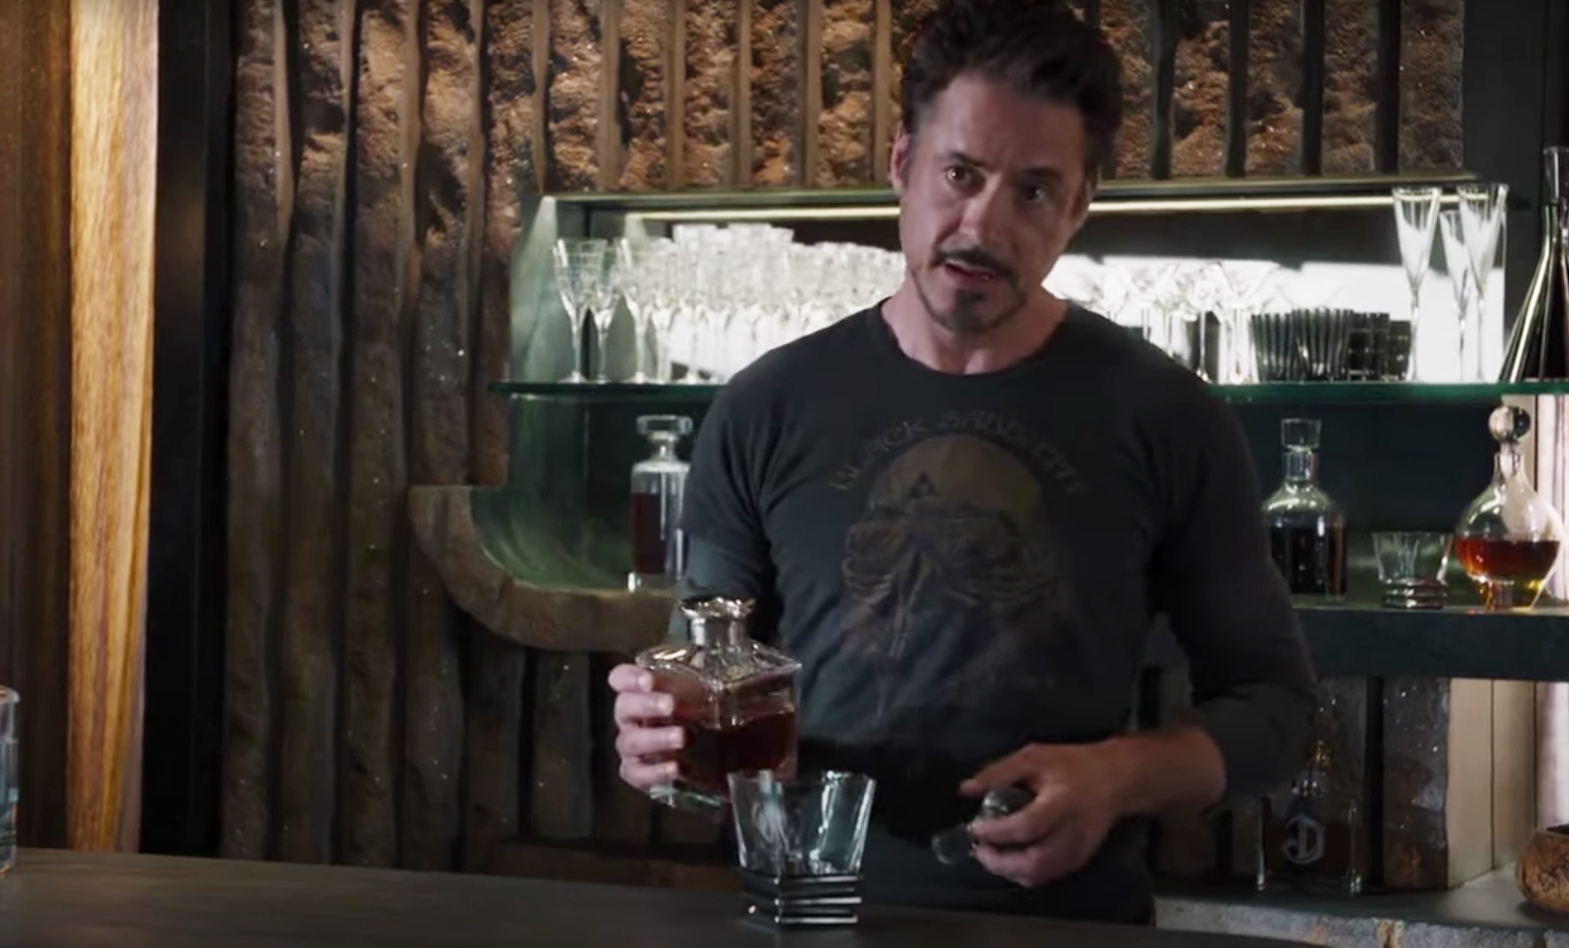 Tony Stark pours himself a whiskey in The Avengers. whiskey glasses in film